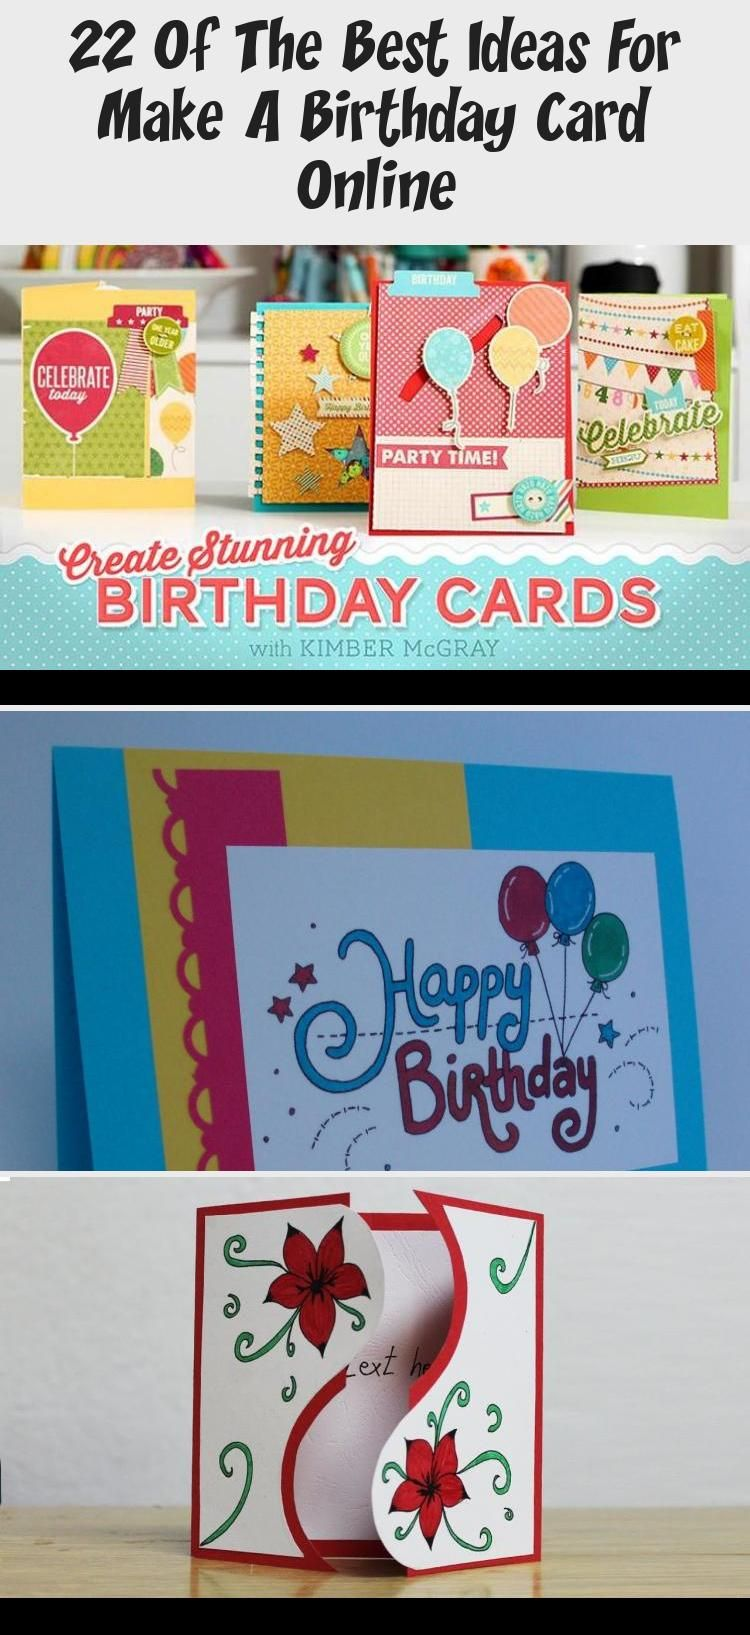 22 Of The Best Ideas For Make A Birthday Card Online In 2020 With